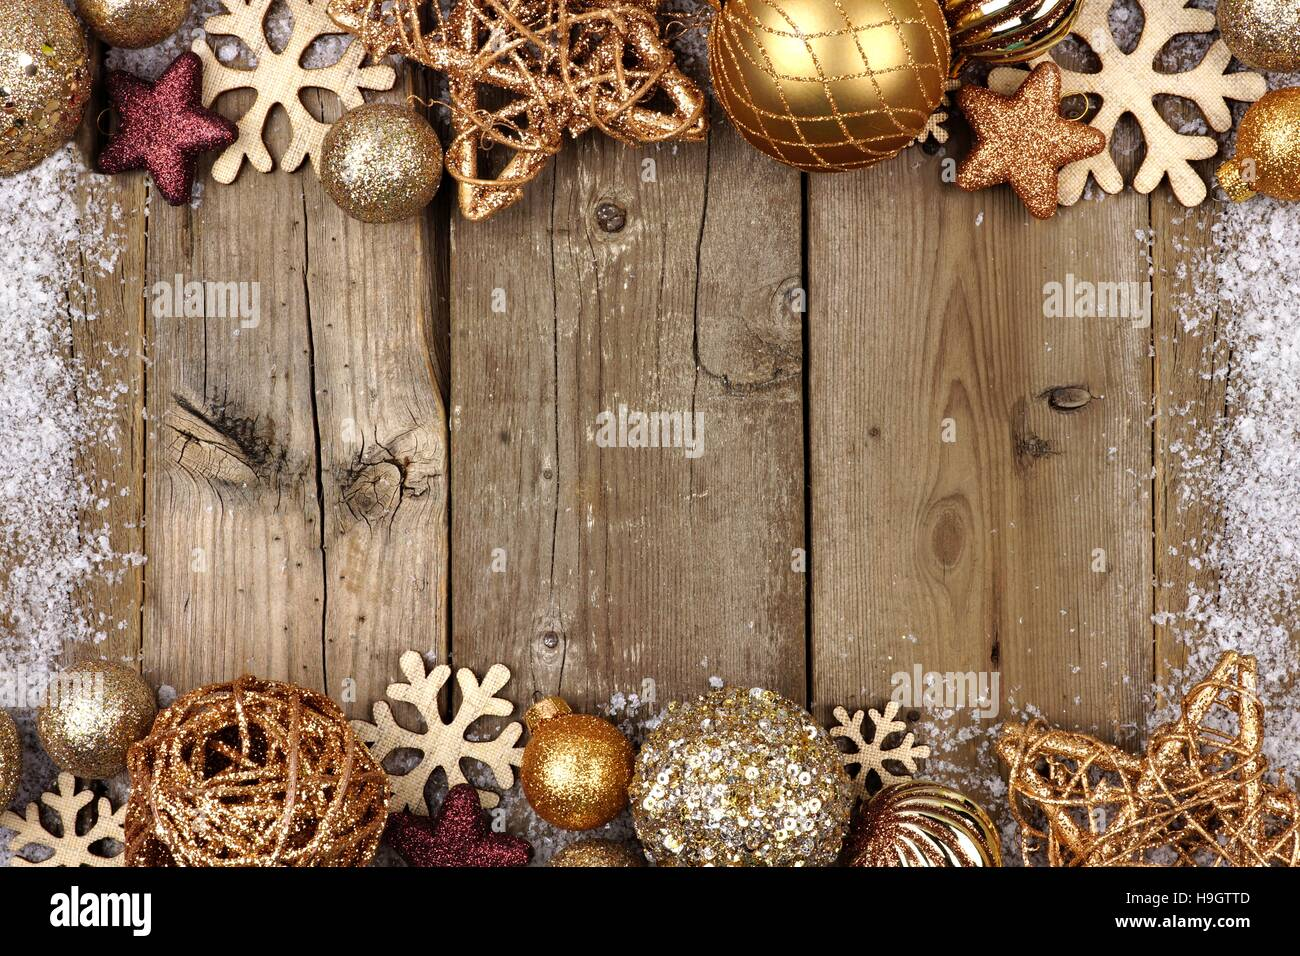 Gold Christmas Ornament Double Border With Snow Frame On A Rustic Wood Background